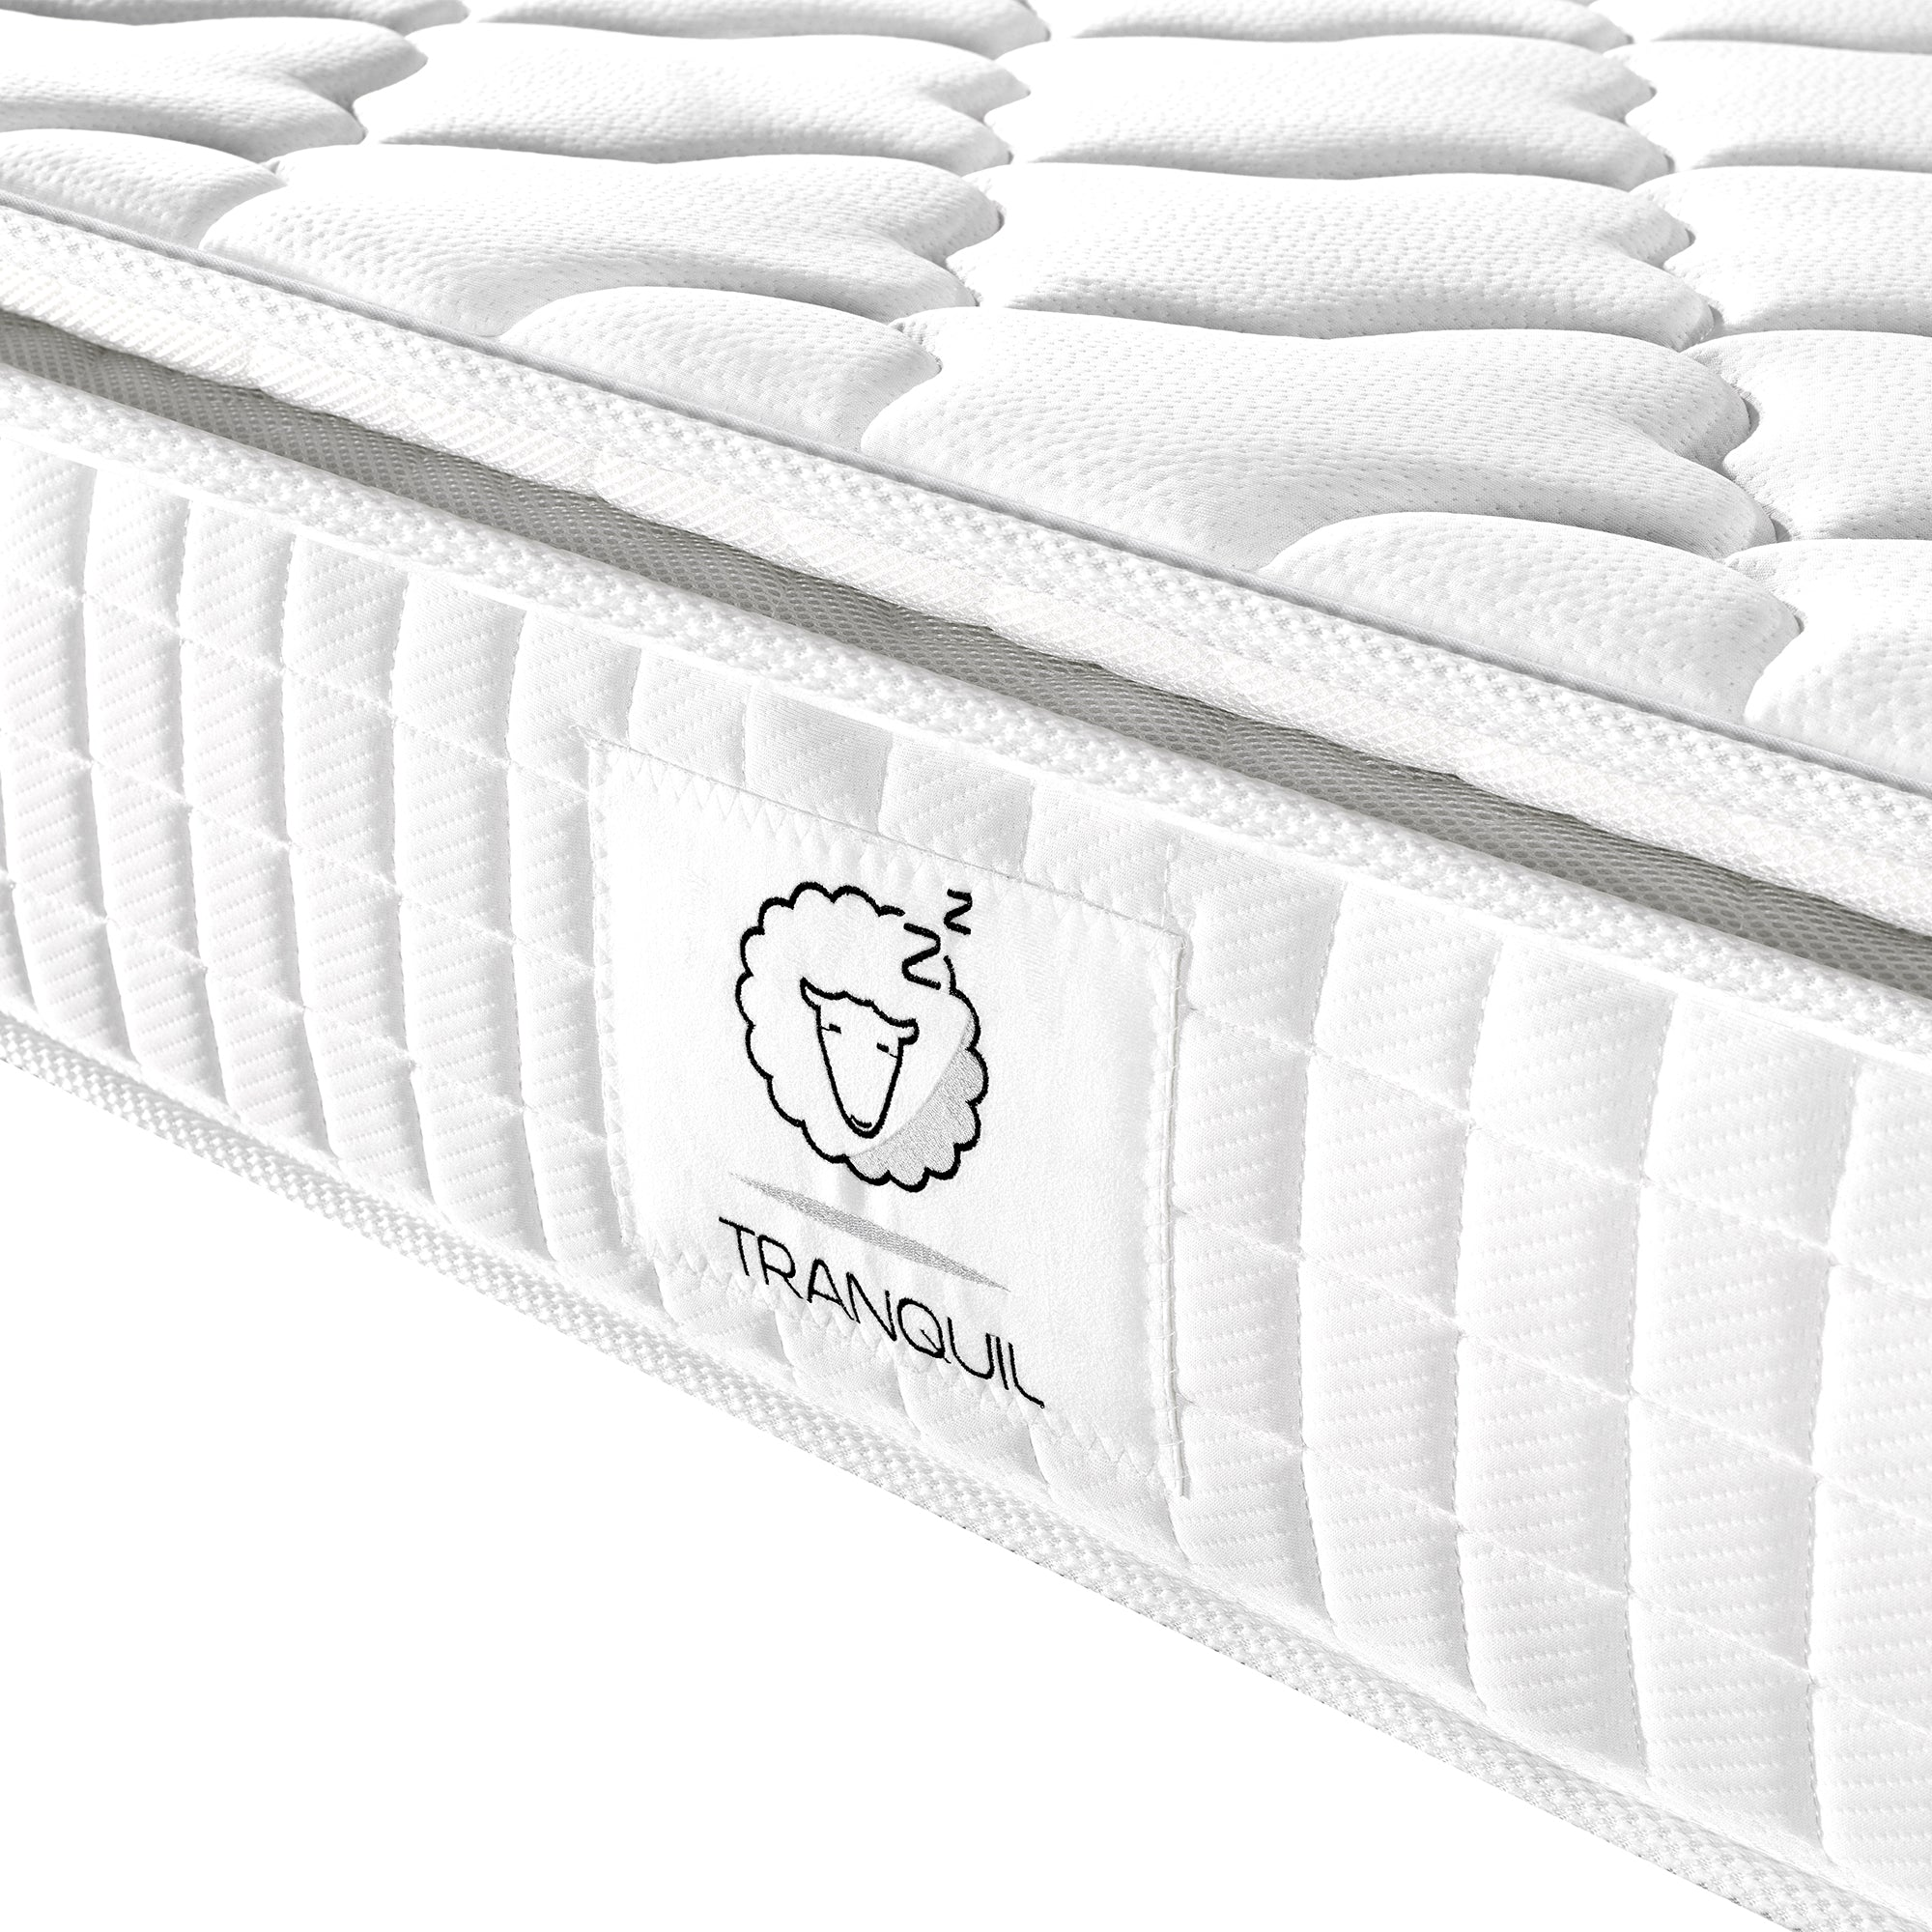 tranquil mattress tra 02 pillow top memory foam with 5 zone pocket springs